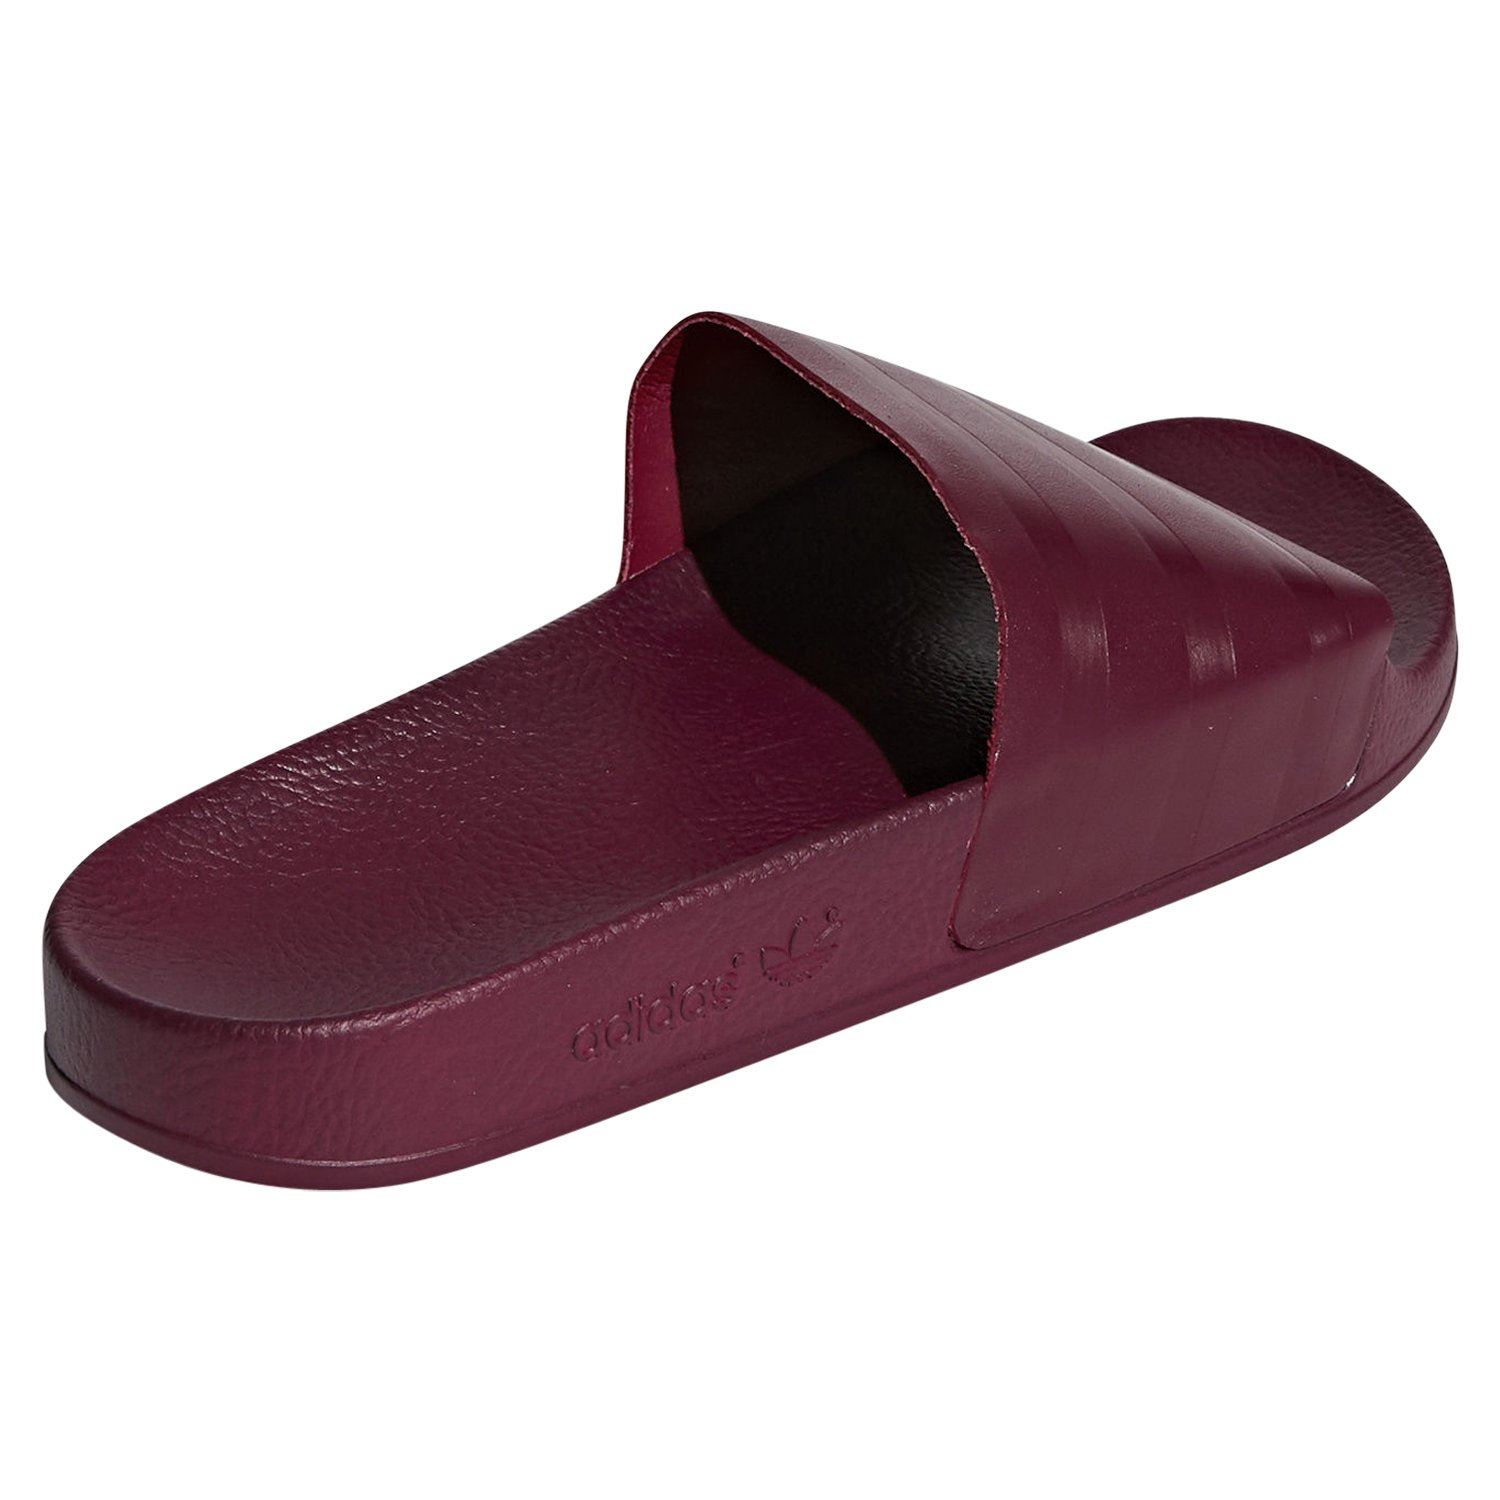 2ad475905571 adidas ORIGINALS MEN S ADILETTE SLIDERS SANDALS BURGUNDY SUMMER BEACH POOL  NEW